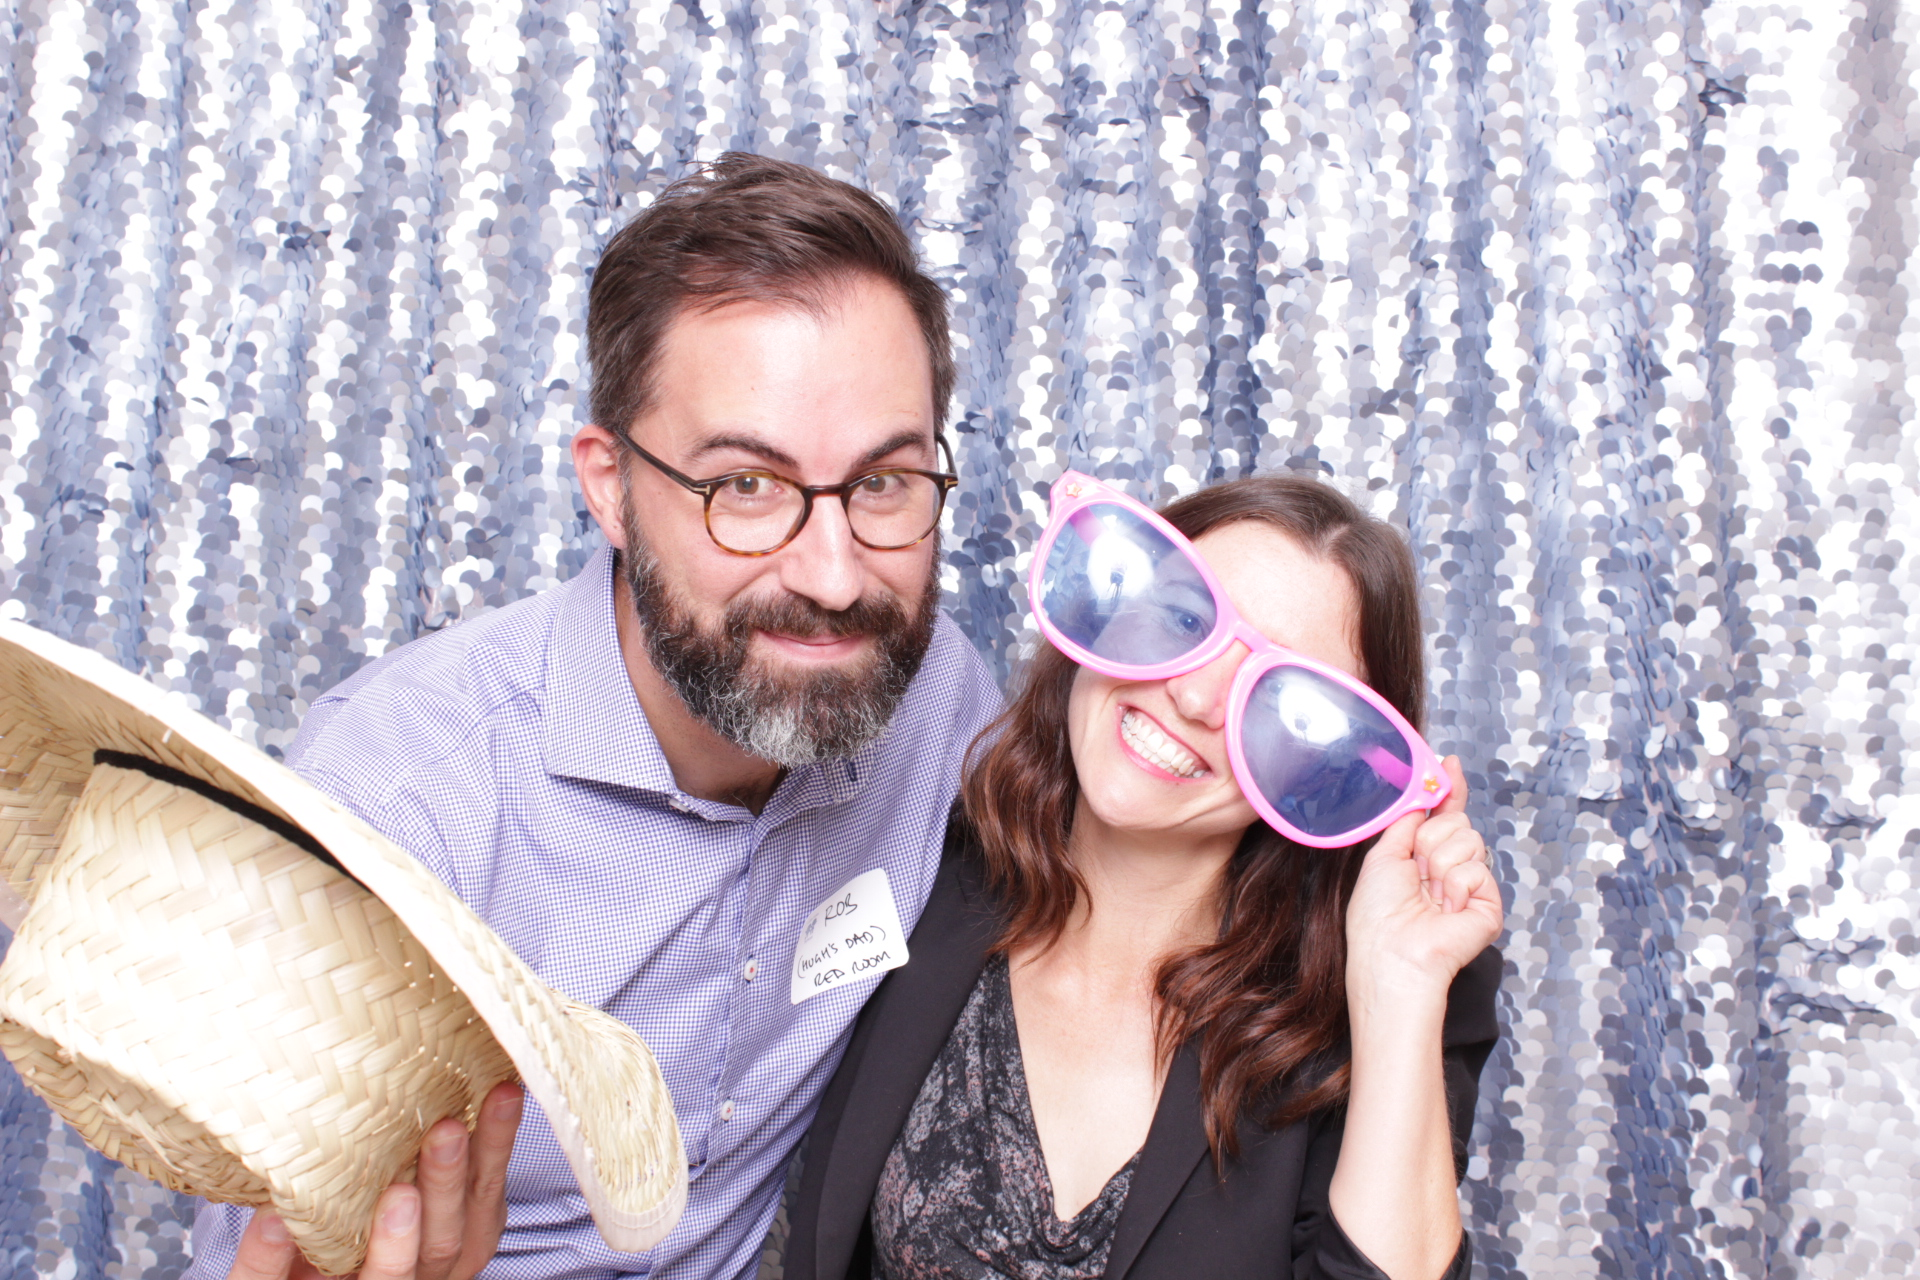 LITTLE FOLKS SCHOOL | HOT PINK PHOTO BOOTH